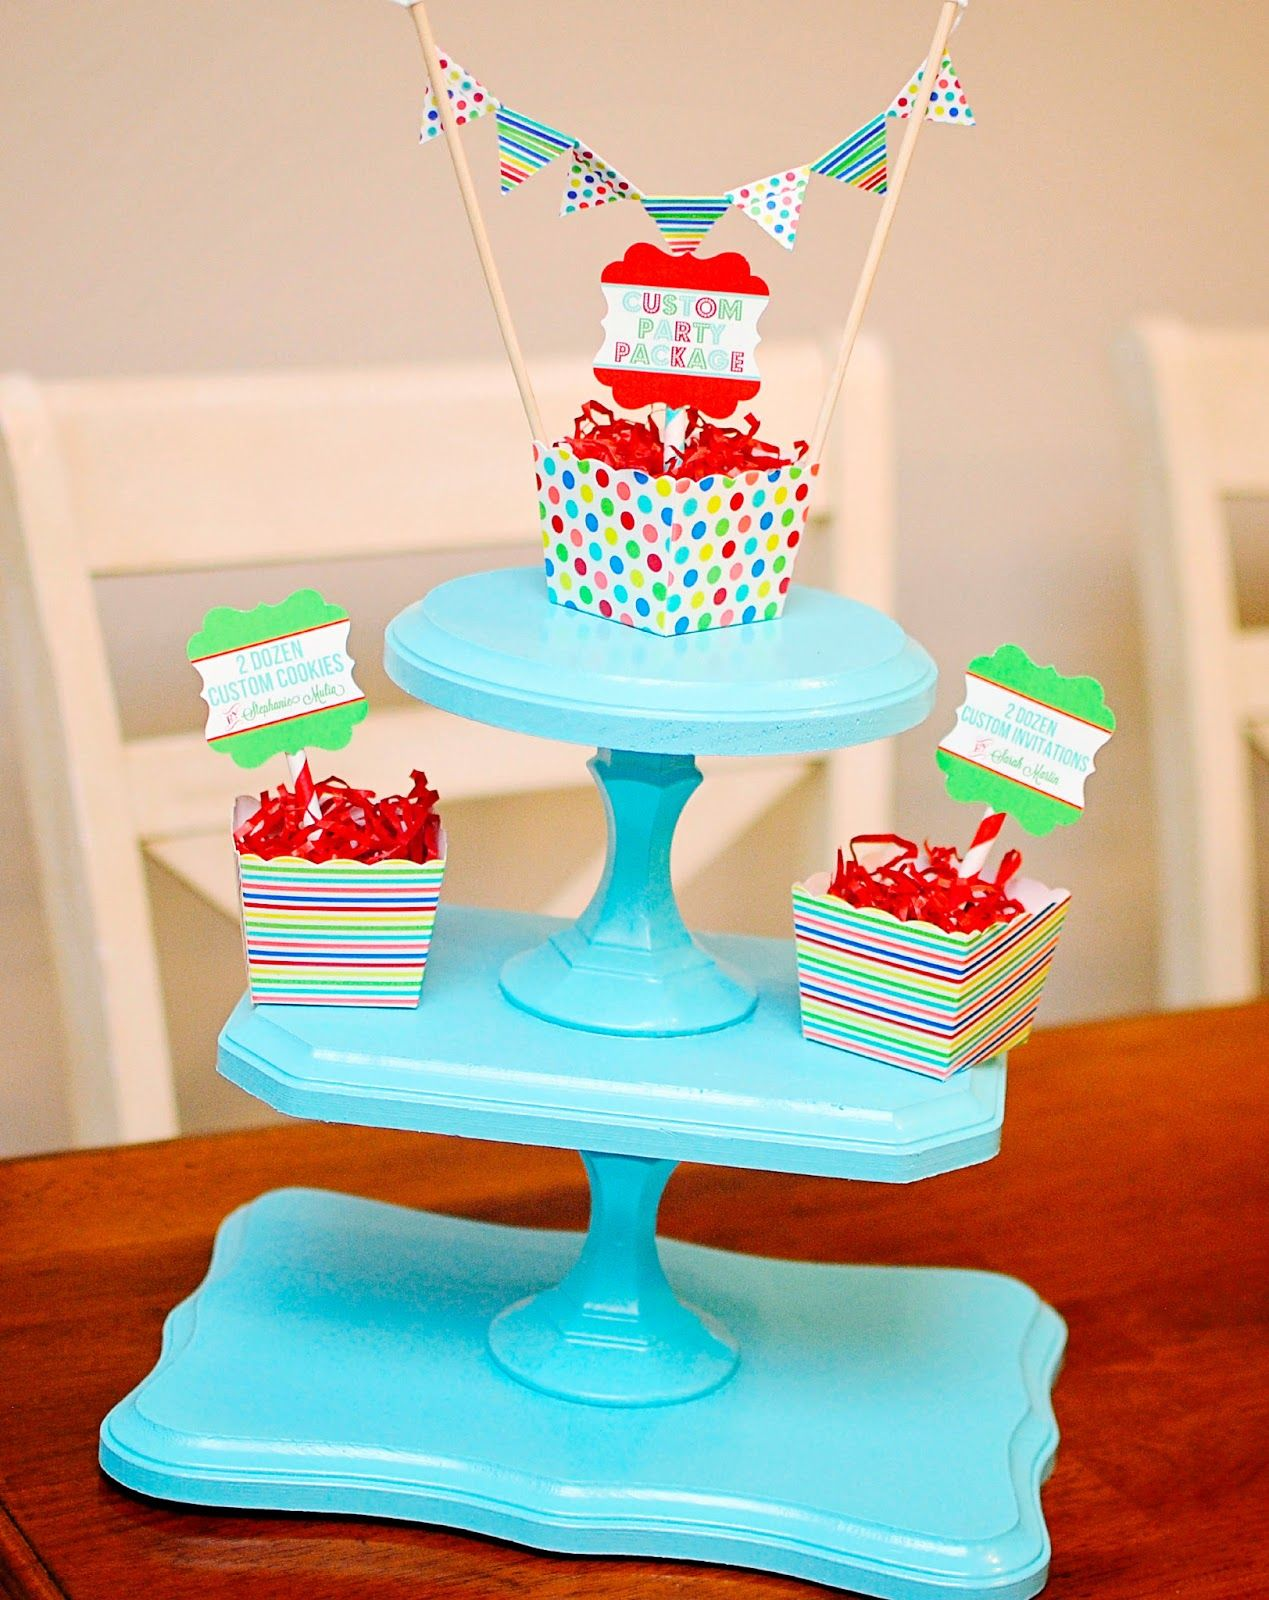 Accesorios Para Mesas Dulces So Cute Diy Cupcake Stand From Sarah Chintomby Chintomby Martin